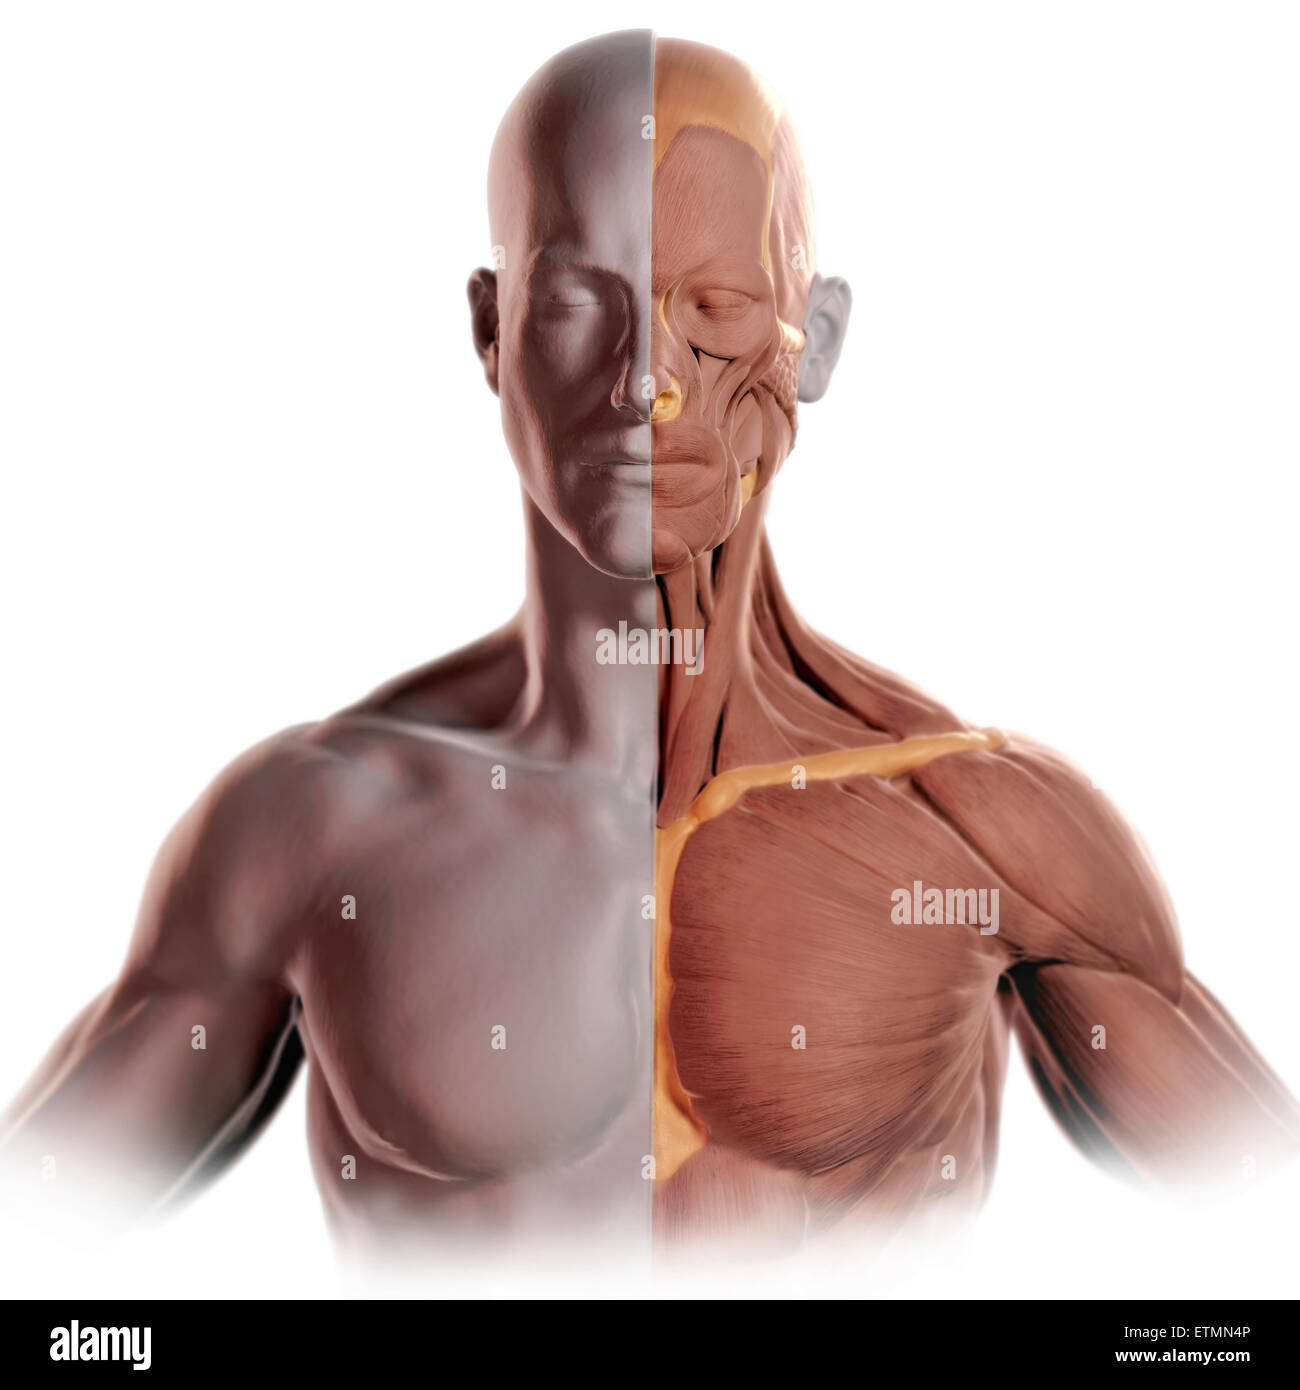 Conceptual image in the style of a clay model of the face and upper body with muscle exposed on one side. Stock Photo